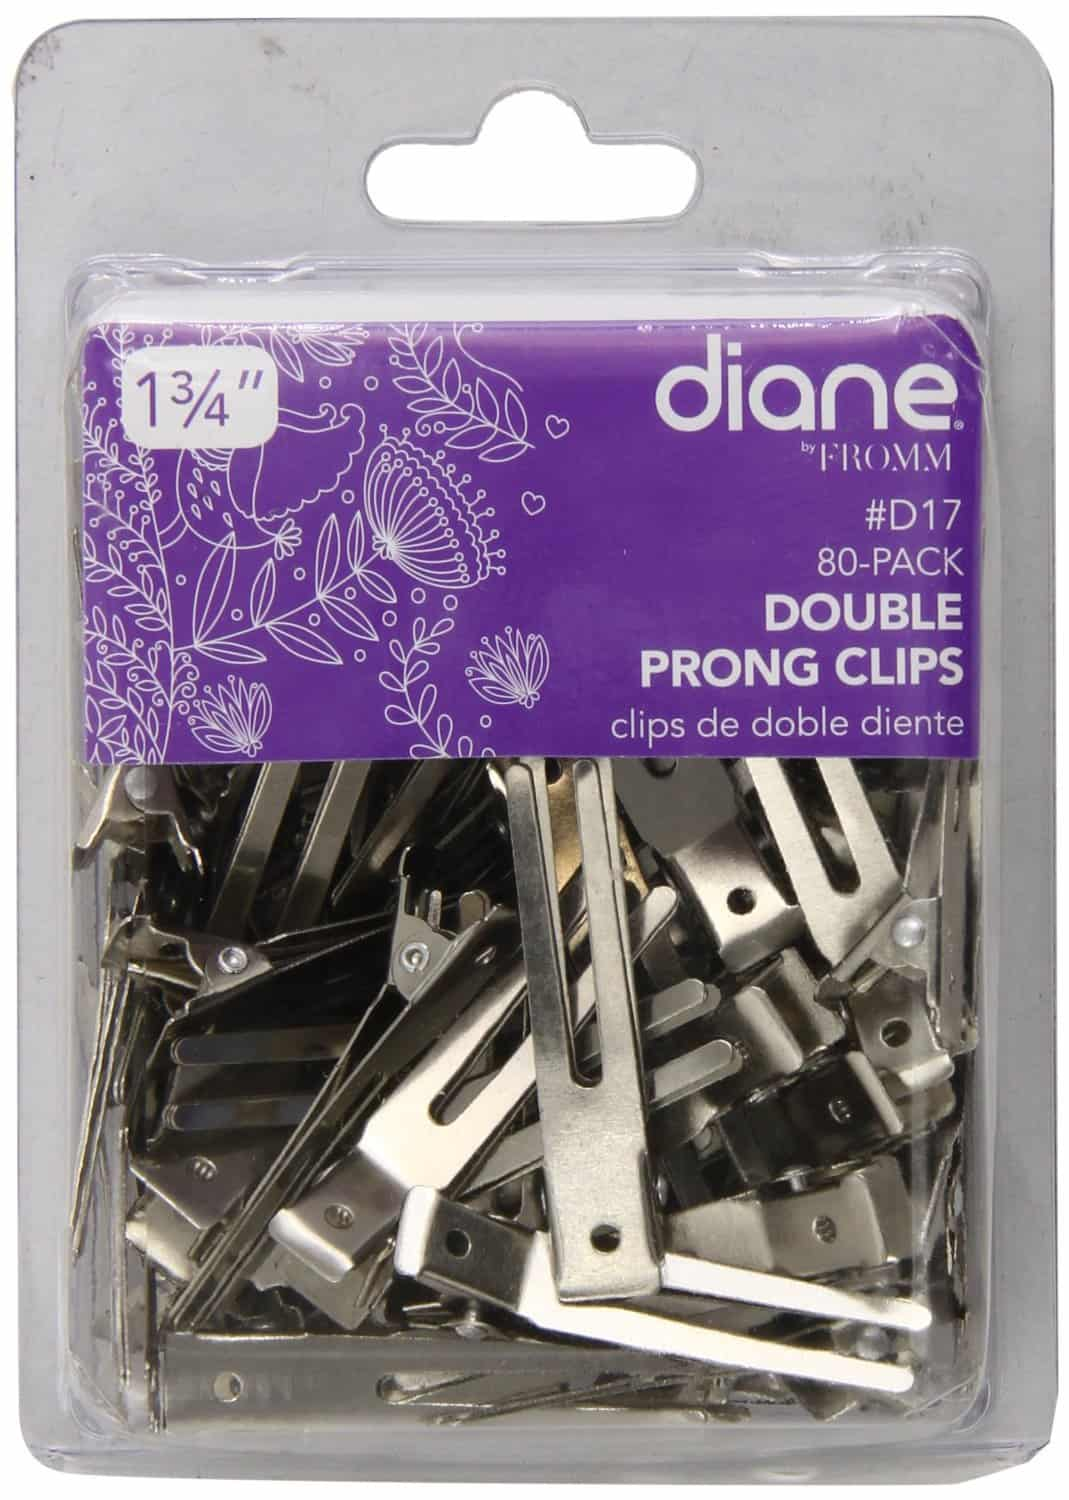 Double prong clips